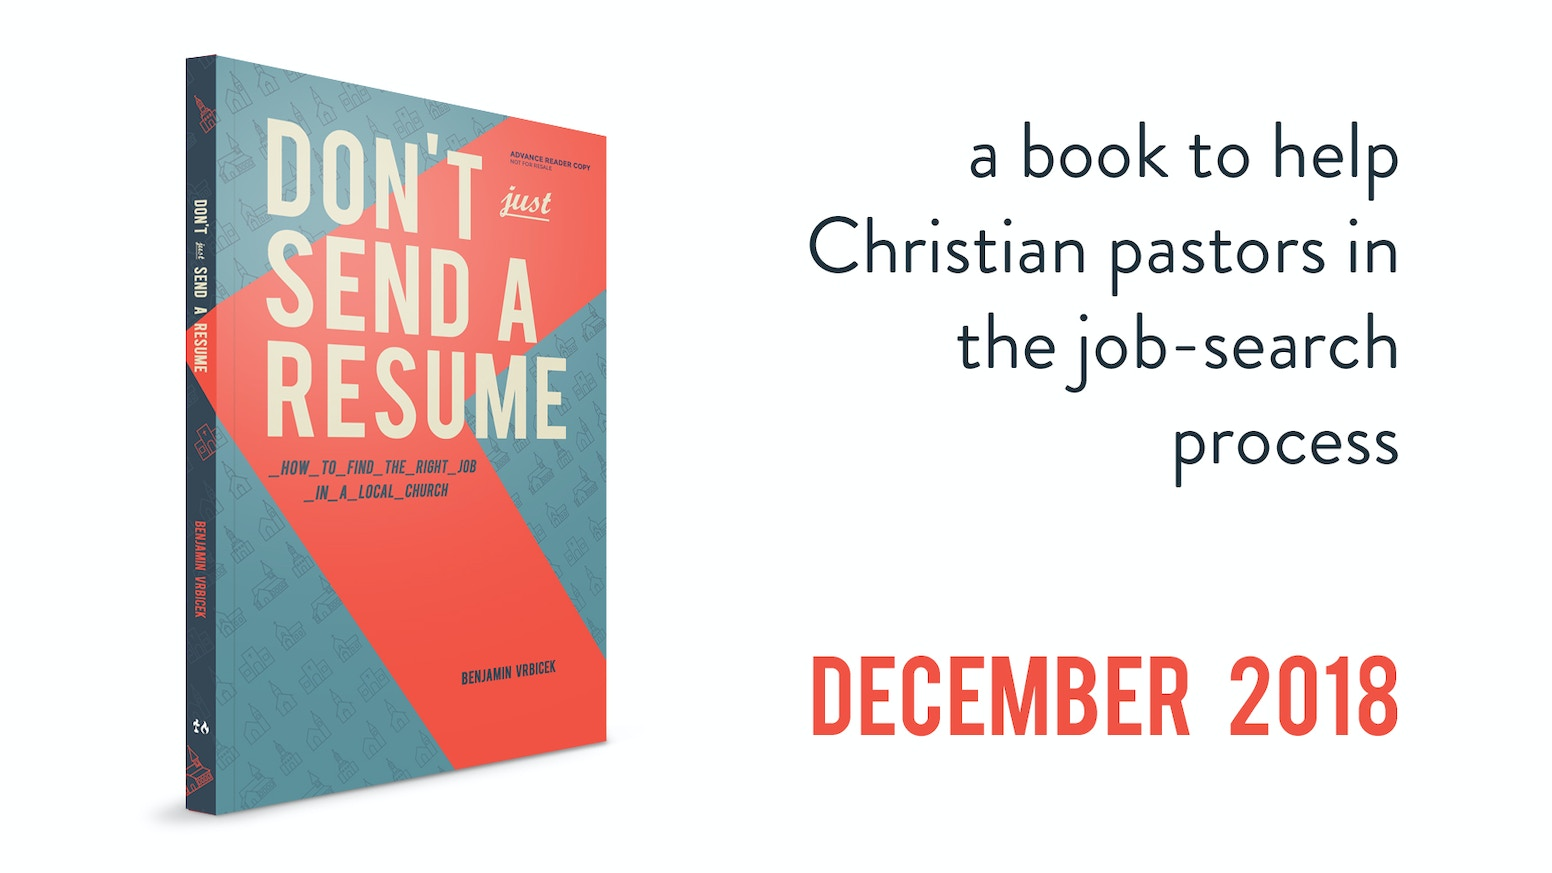 Don\'t Just Send a Resume by Benjamin Vrbicek — Kickstarter